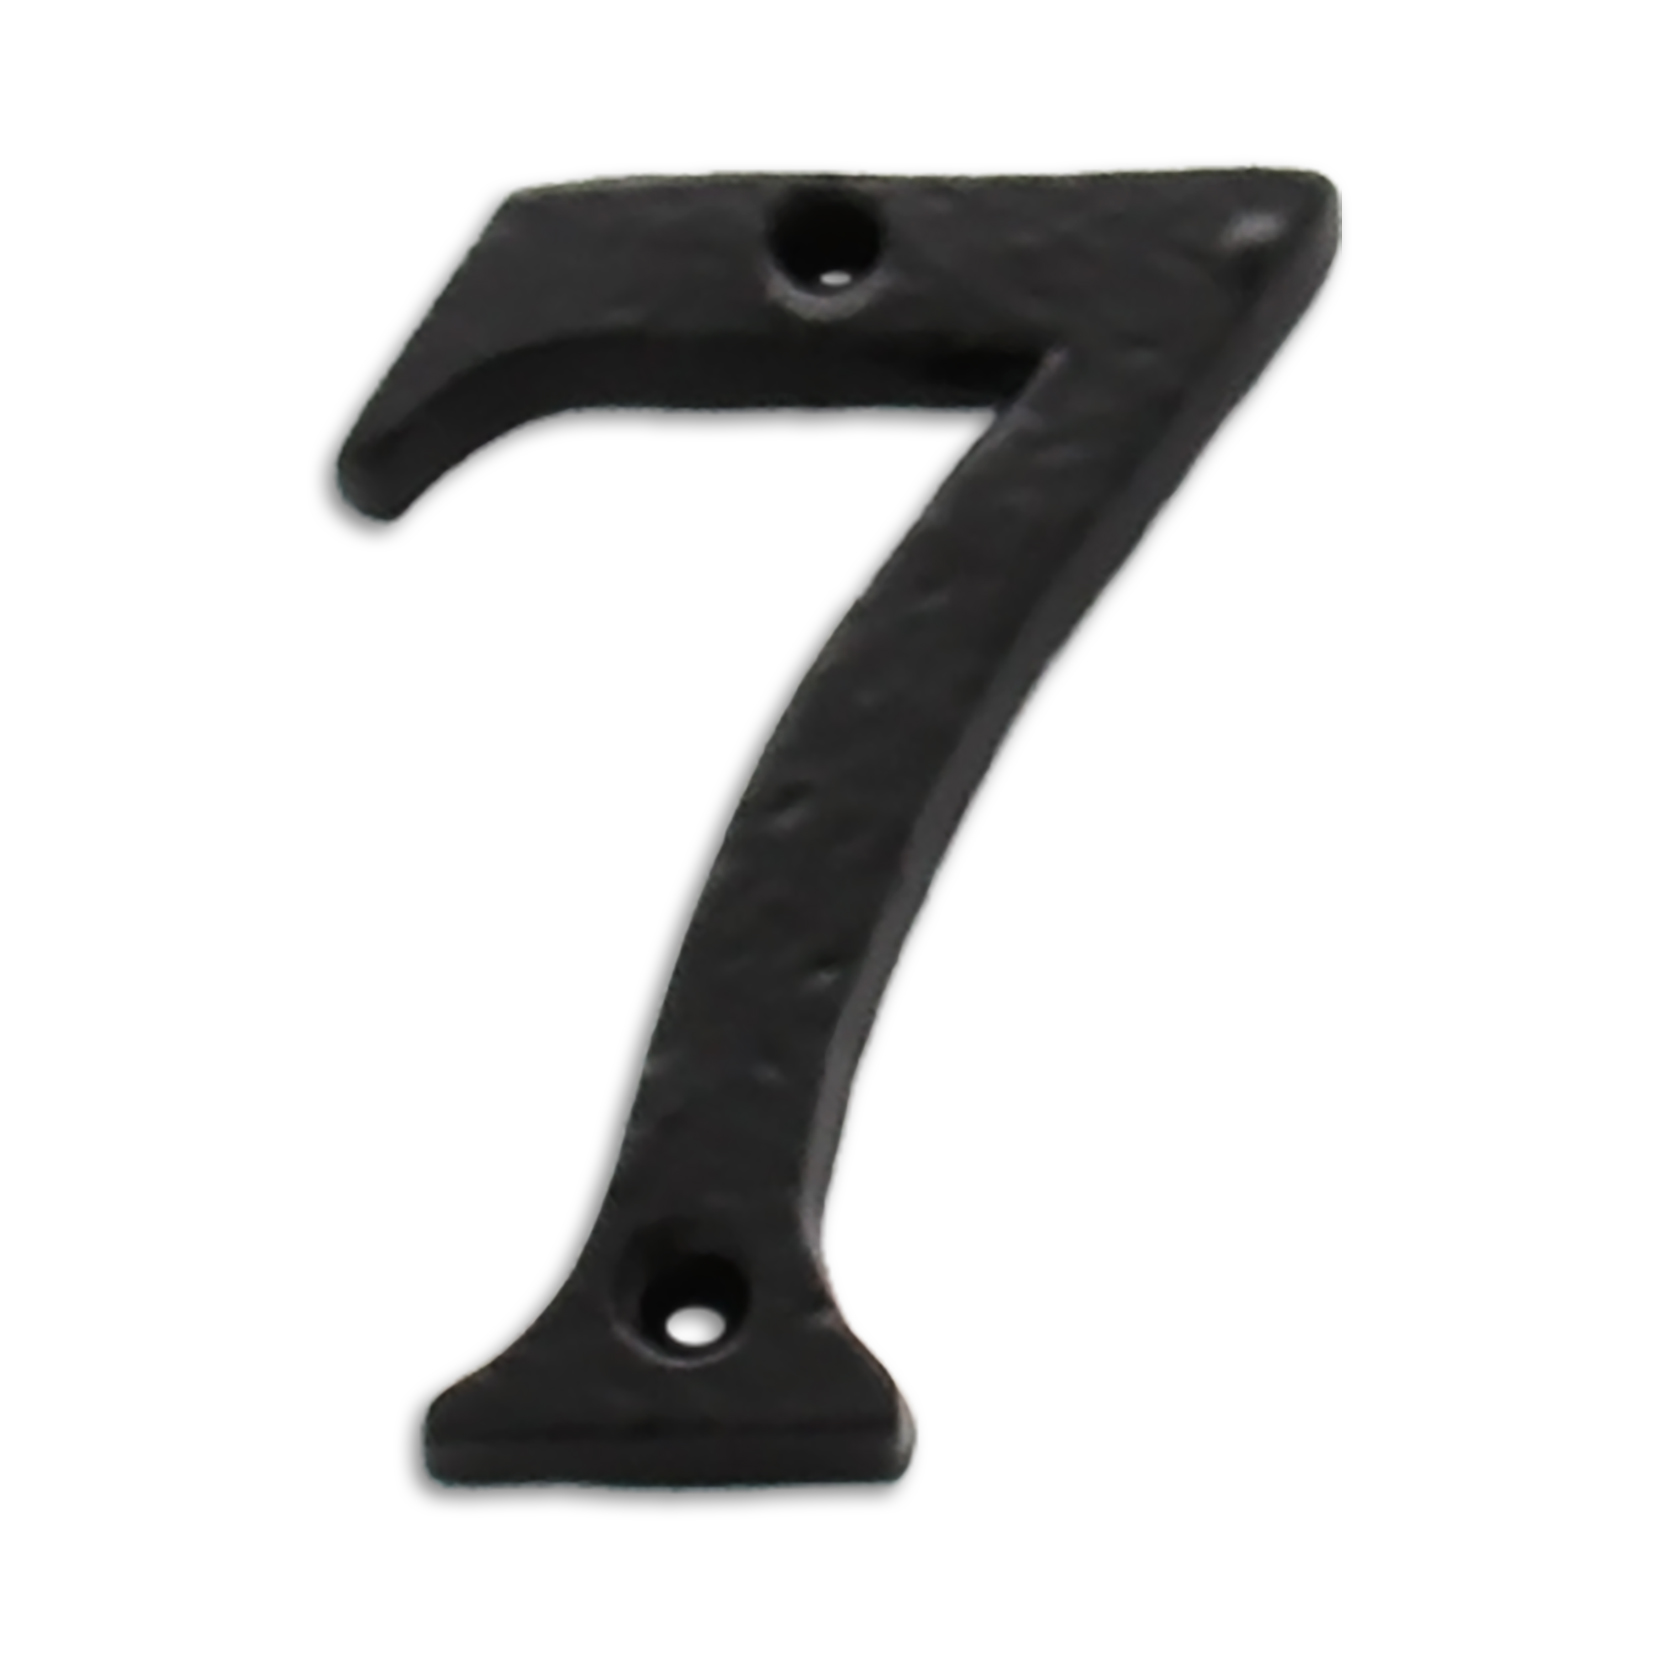 3-inch iron metal house number in iron black finish - metal number 7